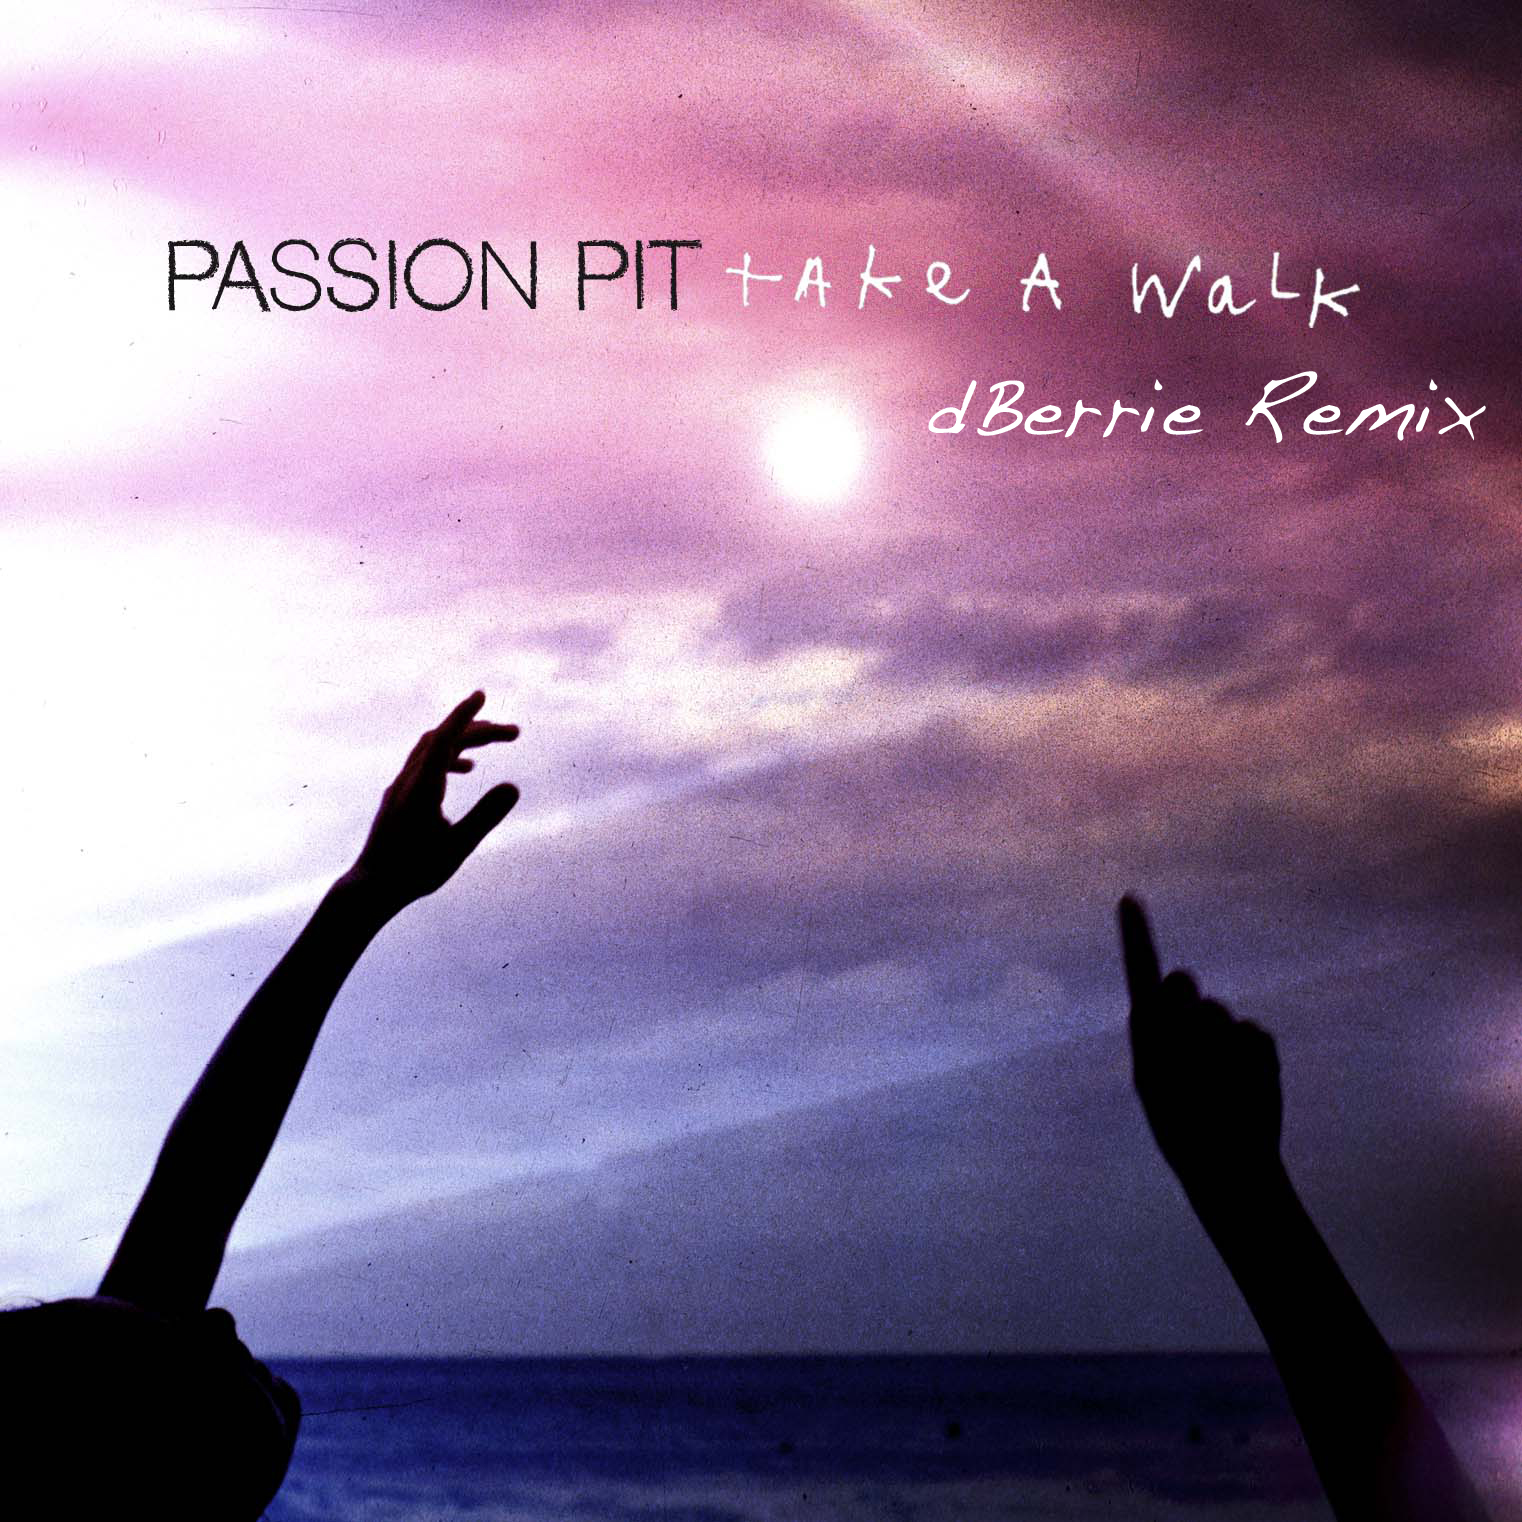 Free Download: Passion Pit – Take a walk (dBerrie Remix)